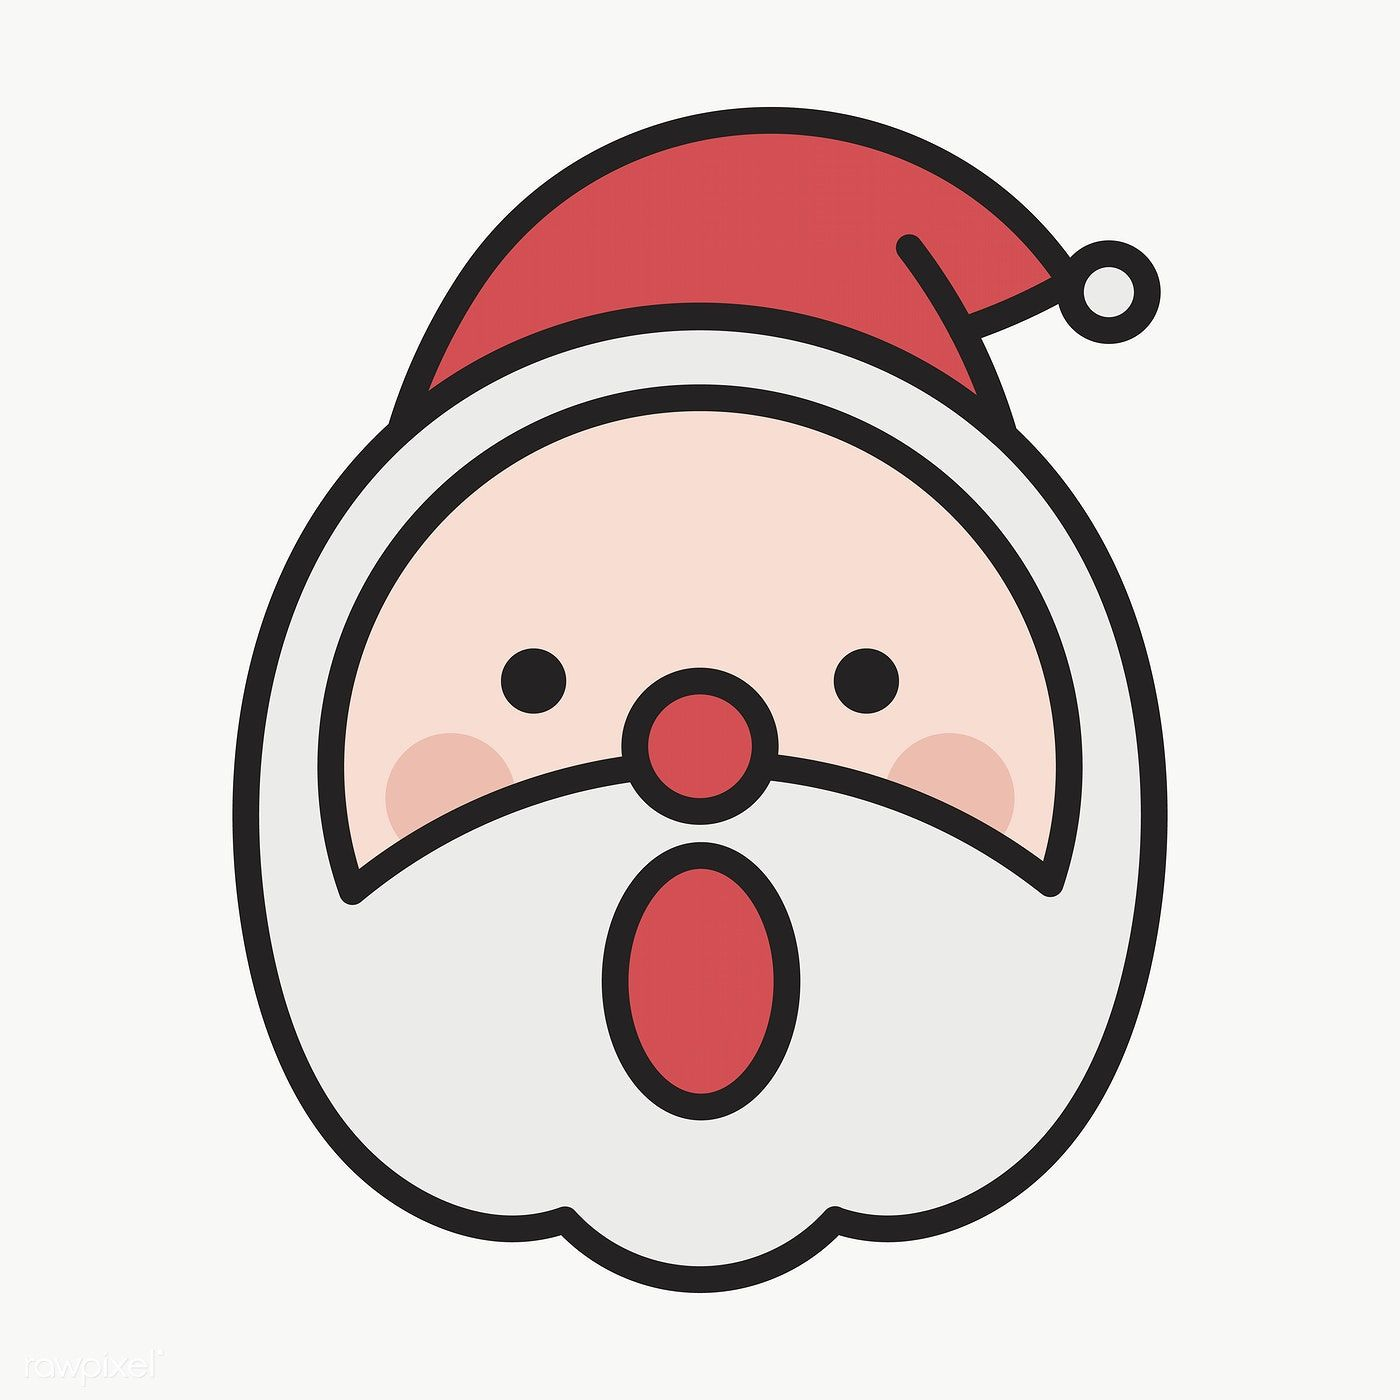 Download Premium Png Of Santa Smiling With With Open Mouth Emoticon On Drawing Cartoon Faces Image Fun Emoticon